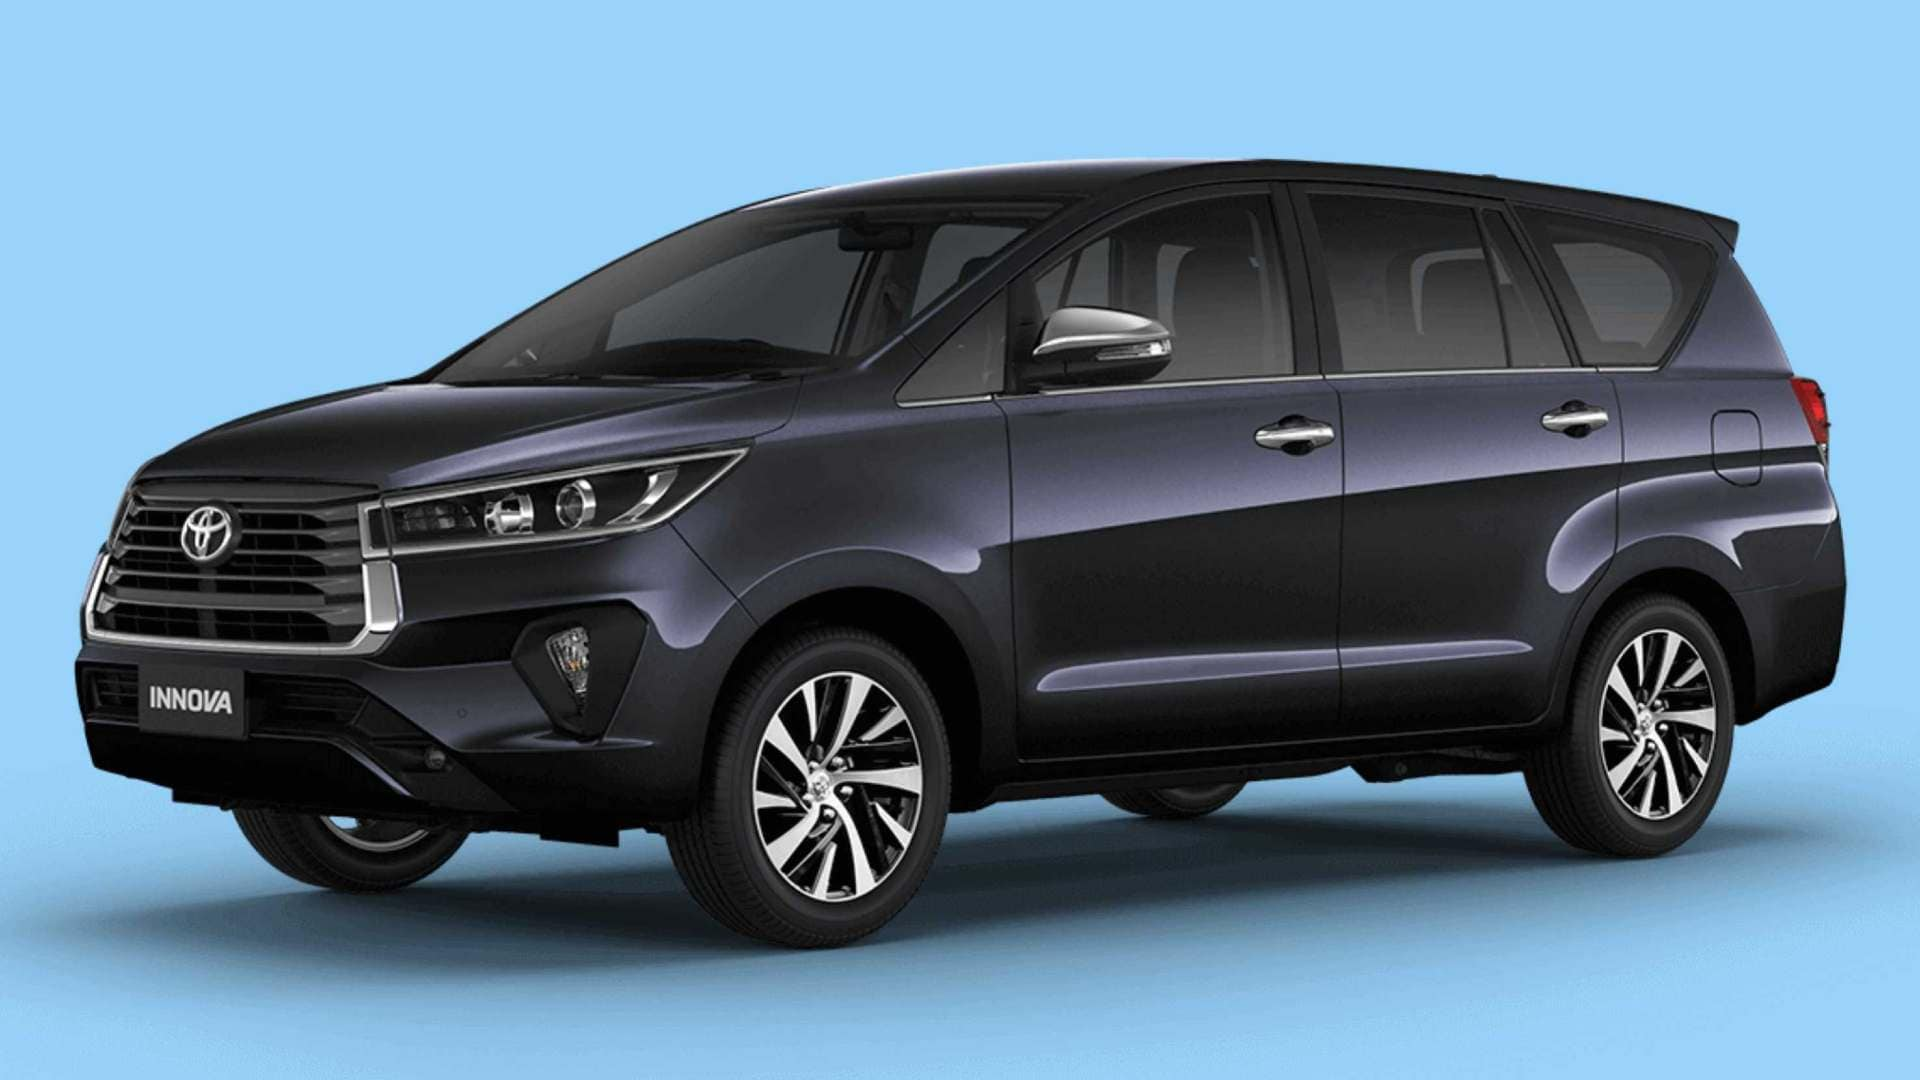 The current generation Toyota Innova Crysta received a facelift in 2020. Photo: Toyota